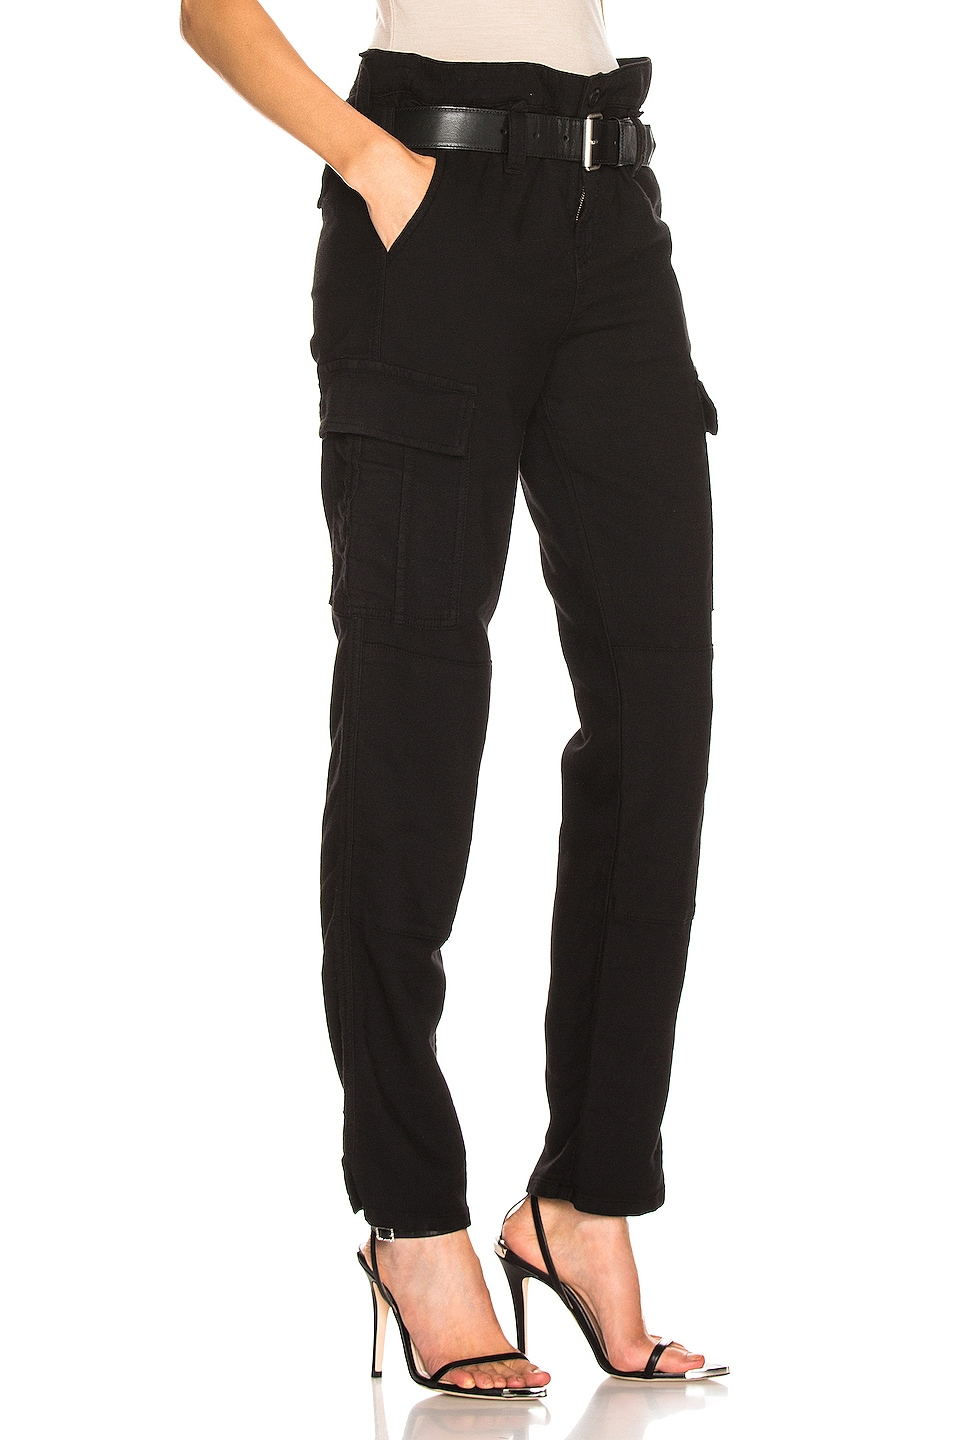 Image 2 of RtA Sallinger Pant in Jet Black 3